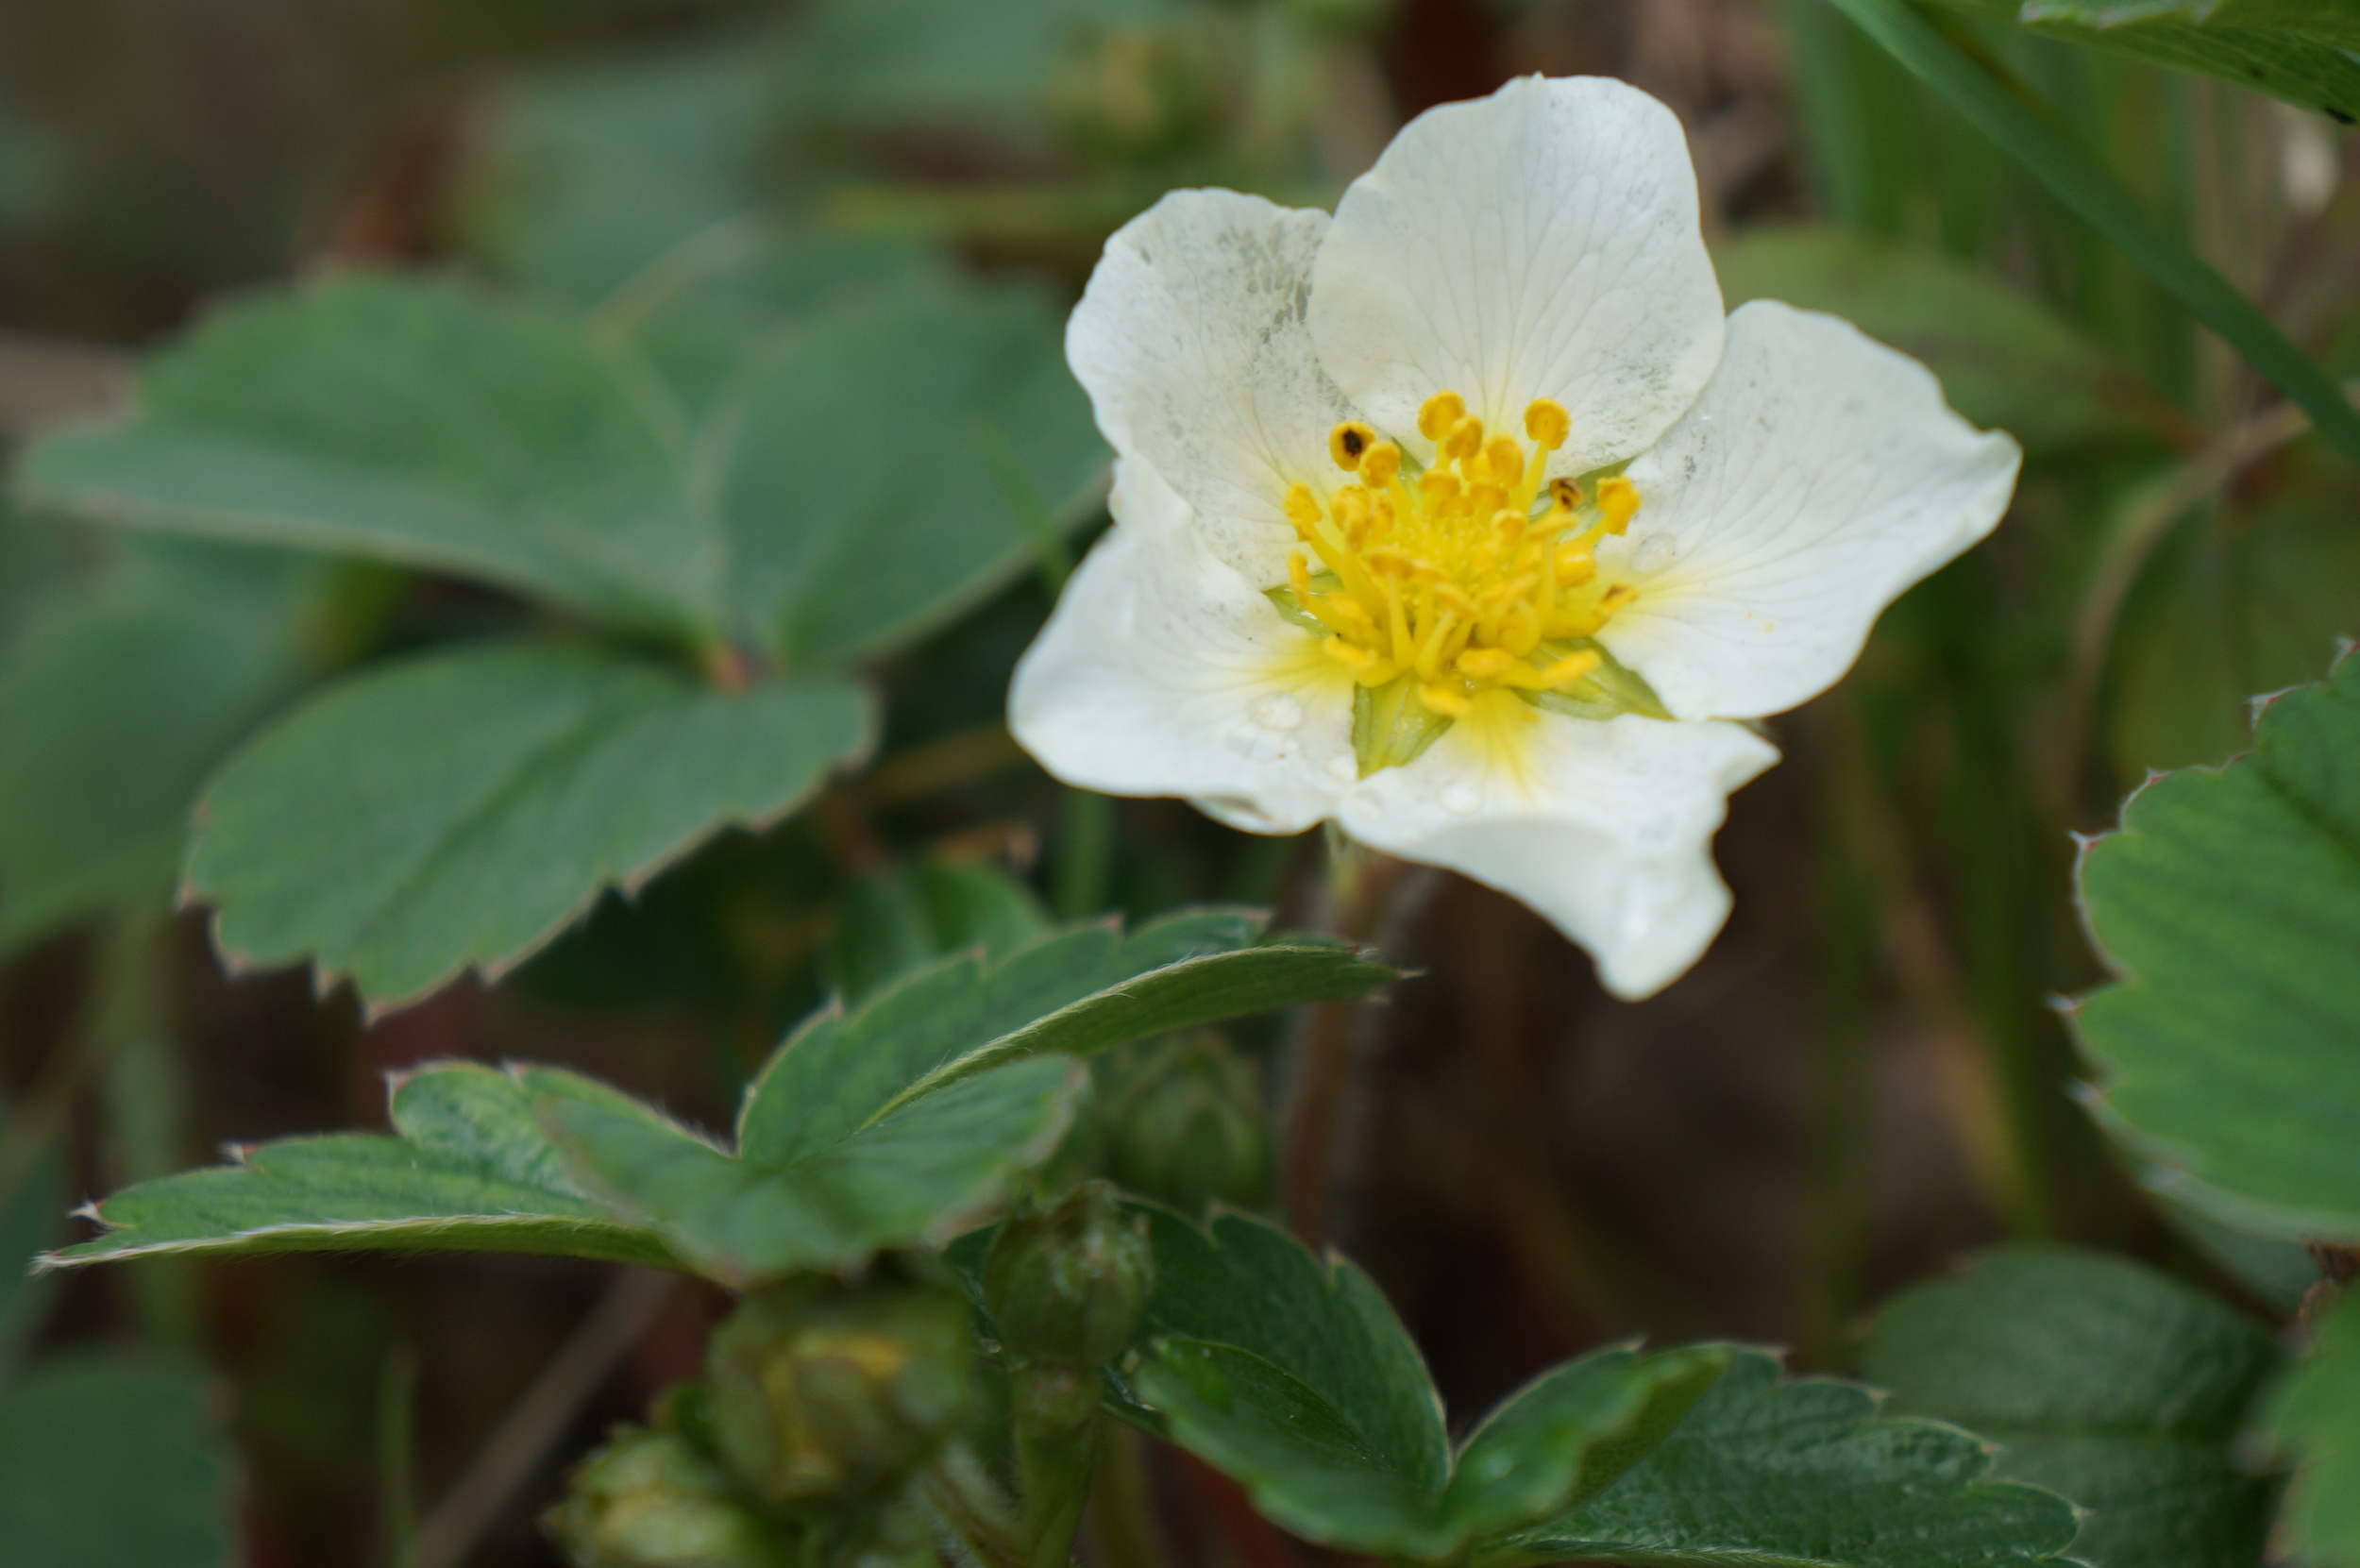 Native strawberry flower.